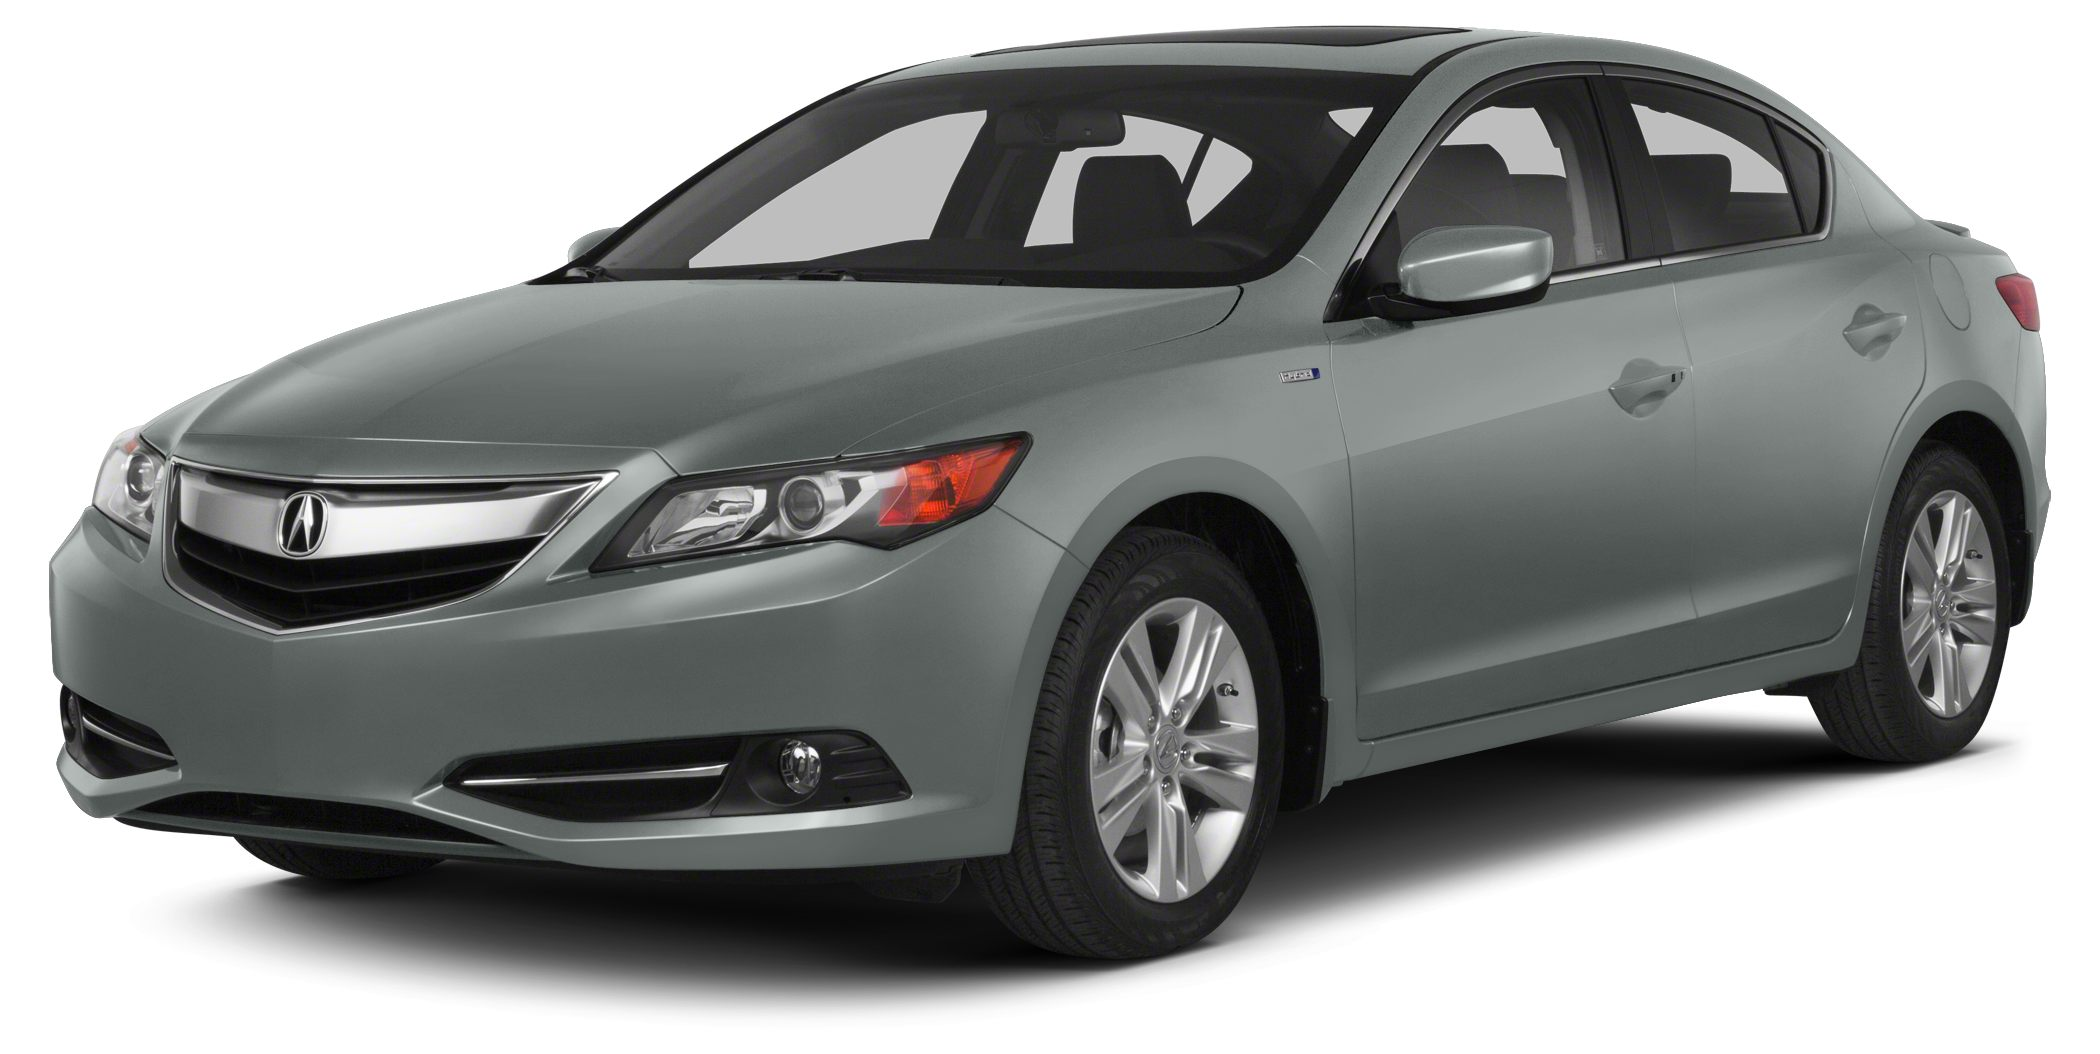 2013 Acura ILX Hybrid 15  WHEN IT COMES TO EXCELLENCE IN USED CAR SALES YOU KNOW YOURE AT STA